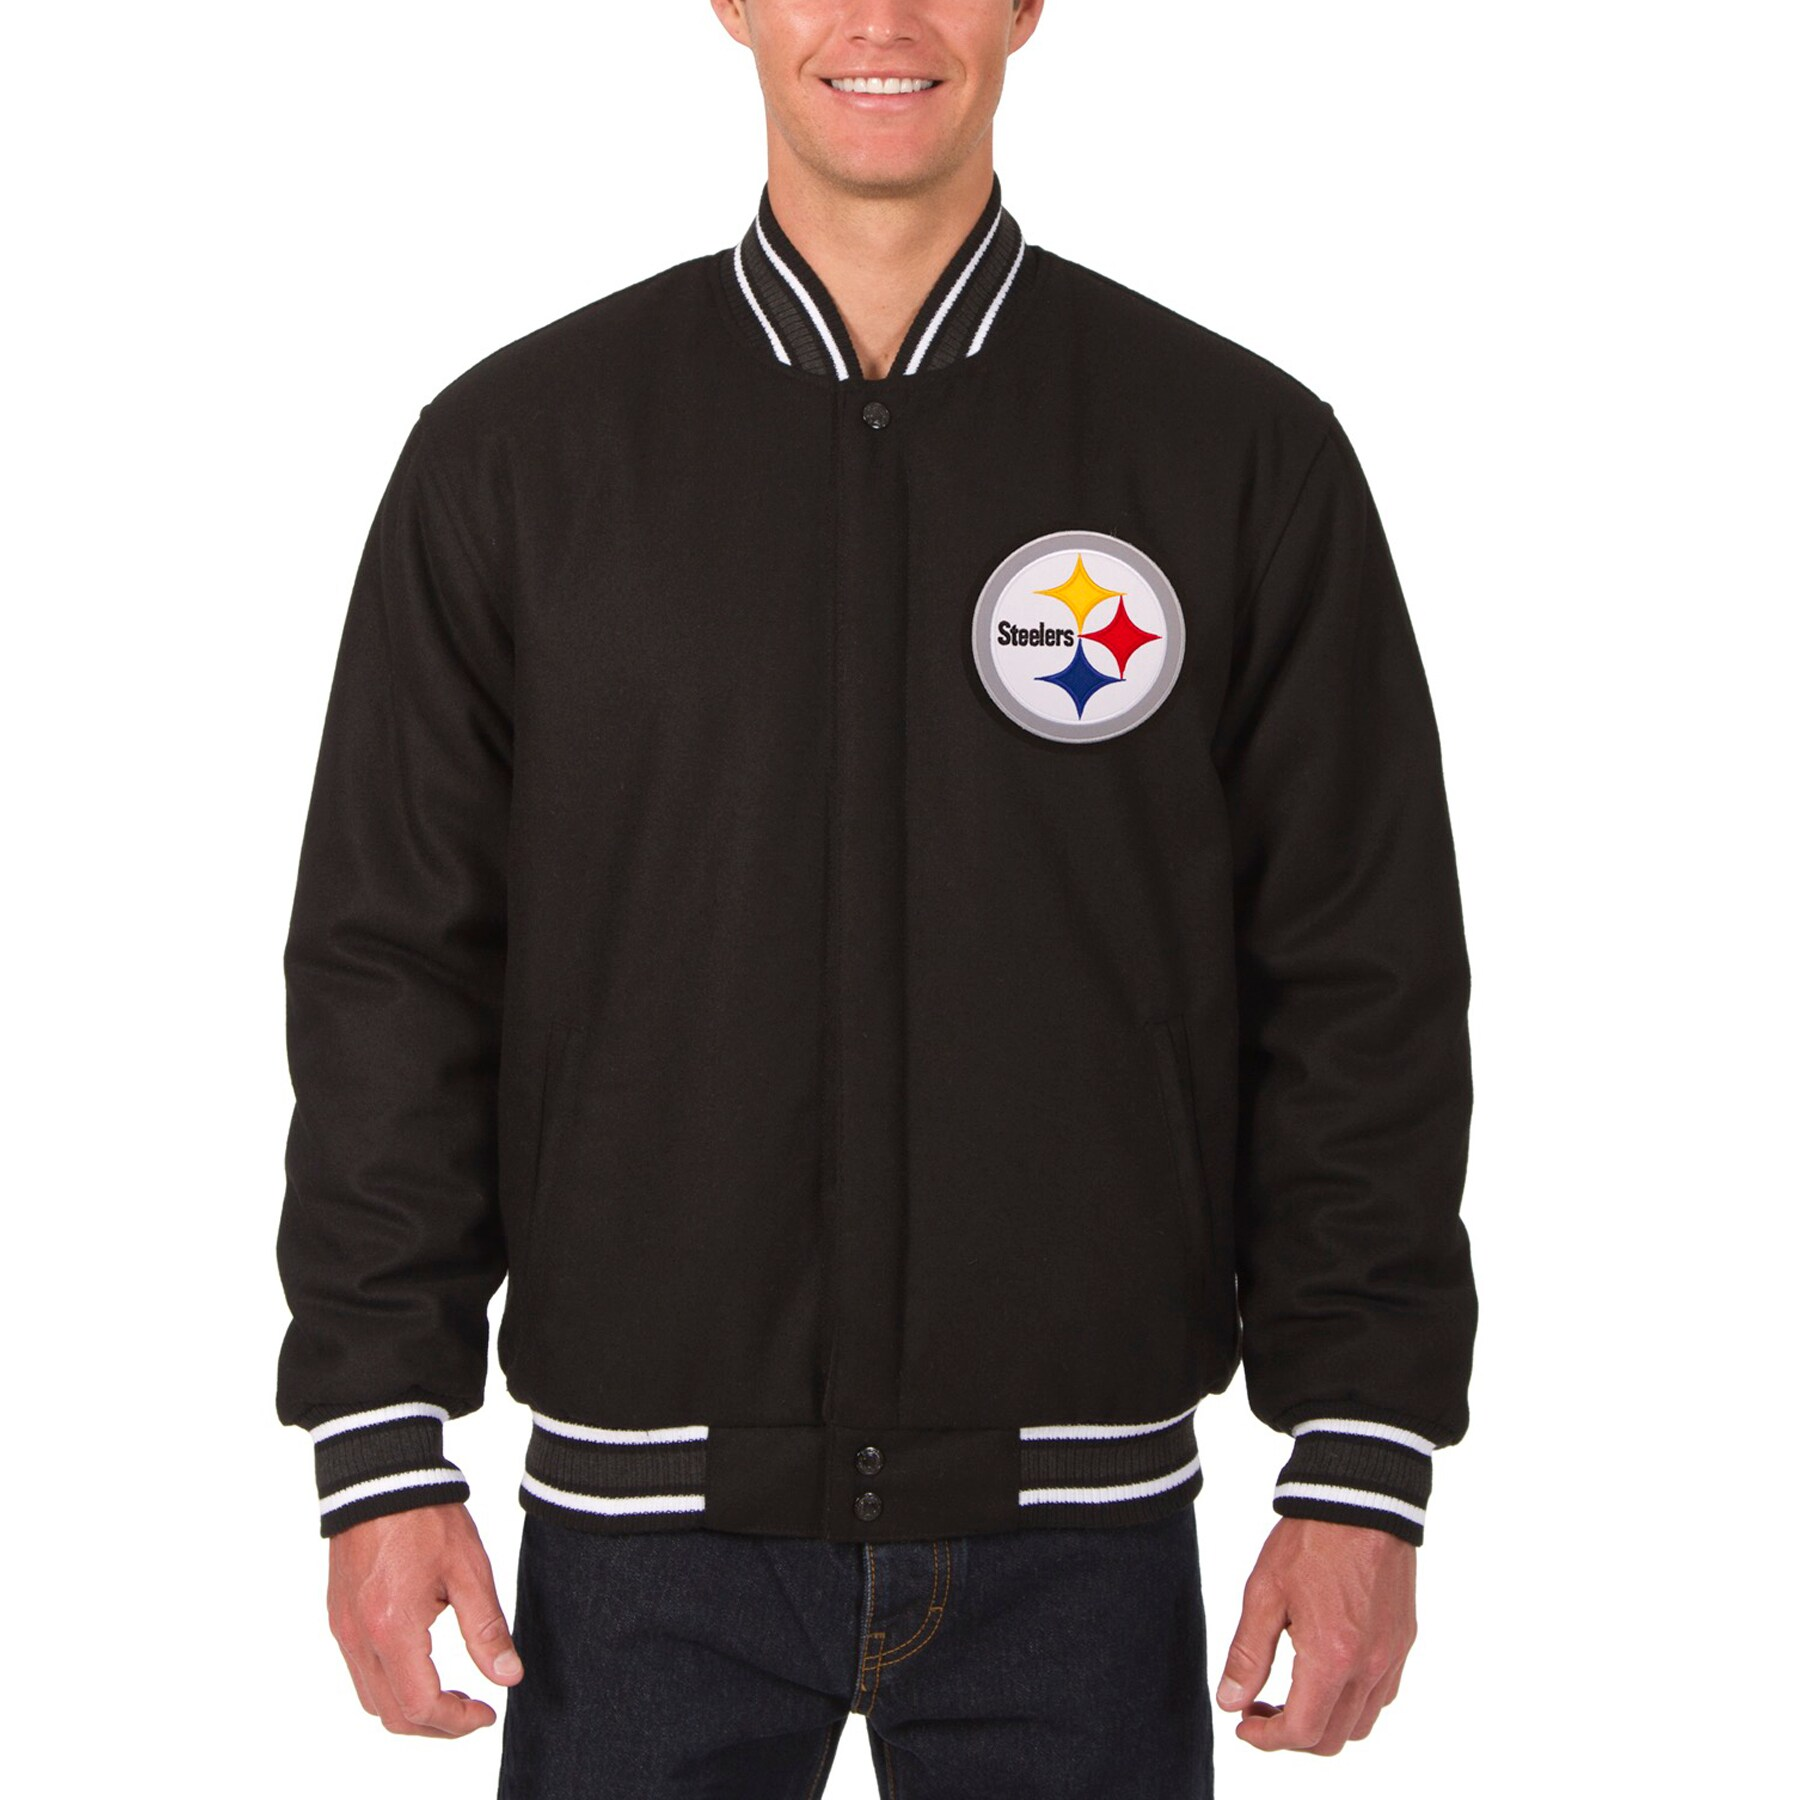 Pittsburgh Steelers JH Design Wool Reversible Jacket with Embroidered Logos - Black